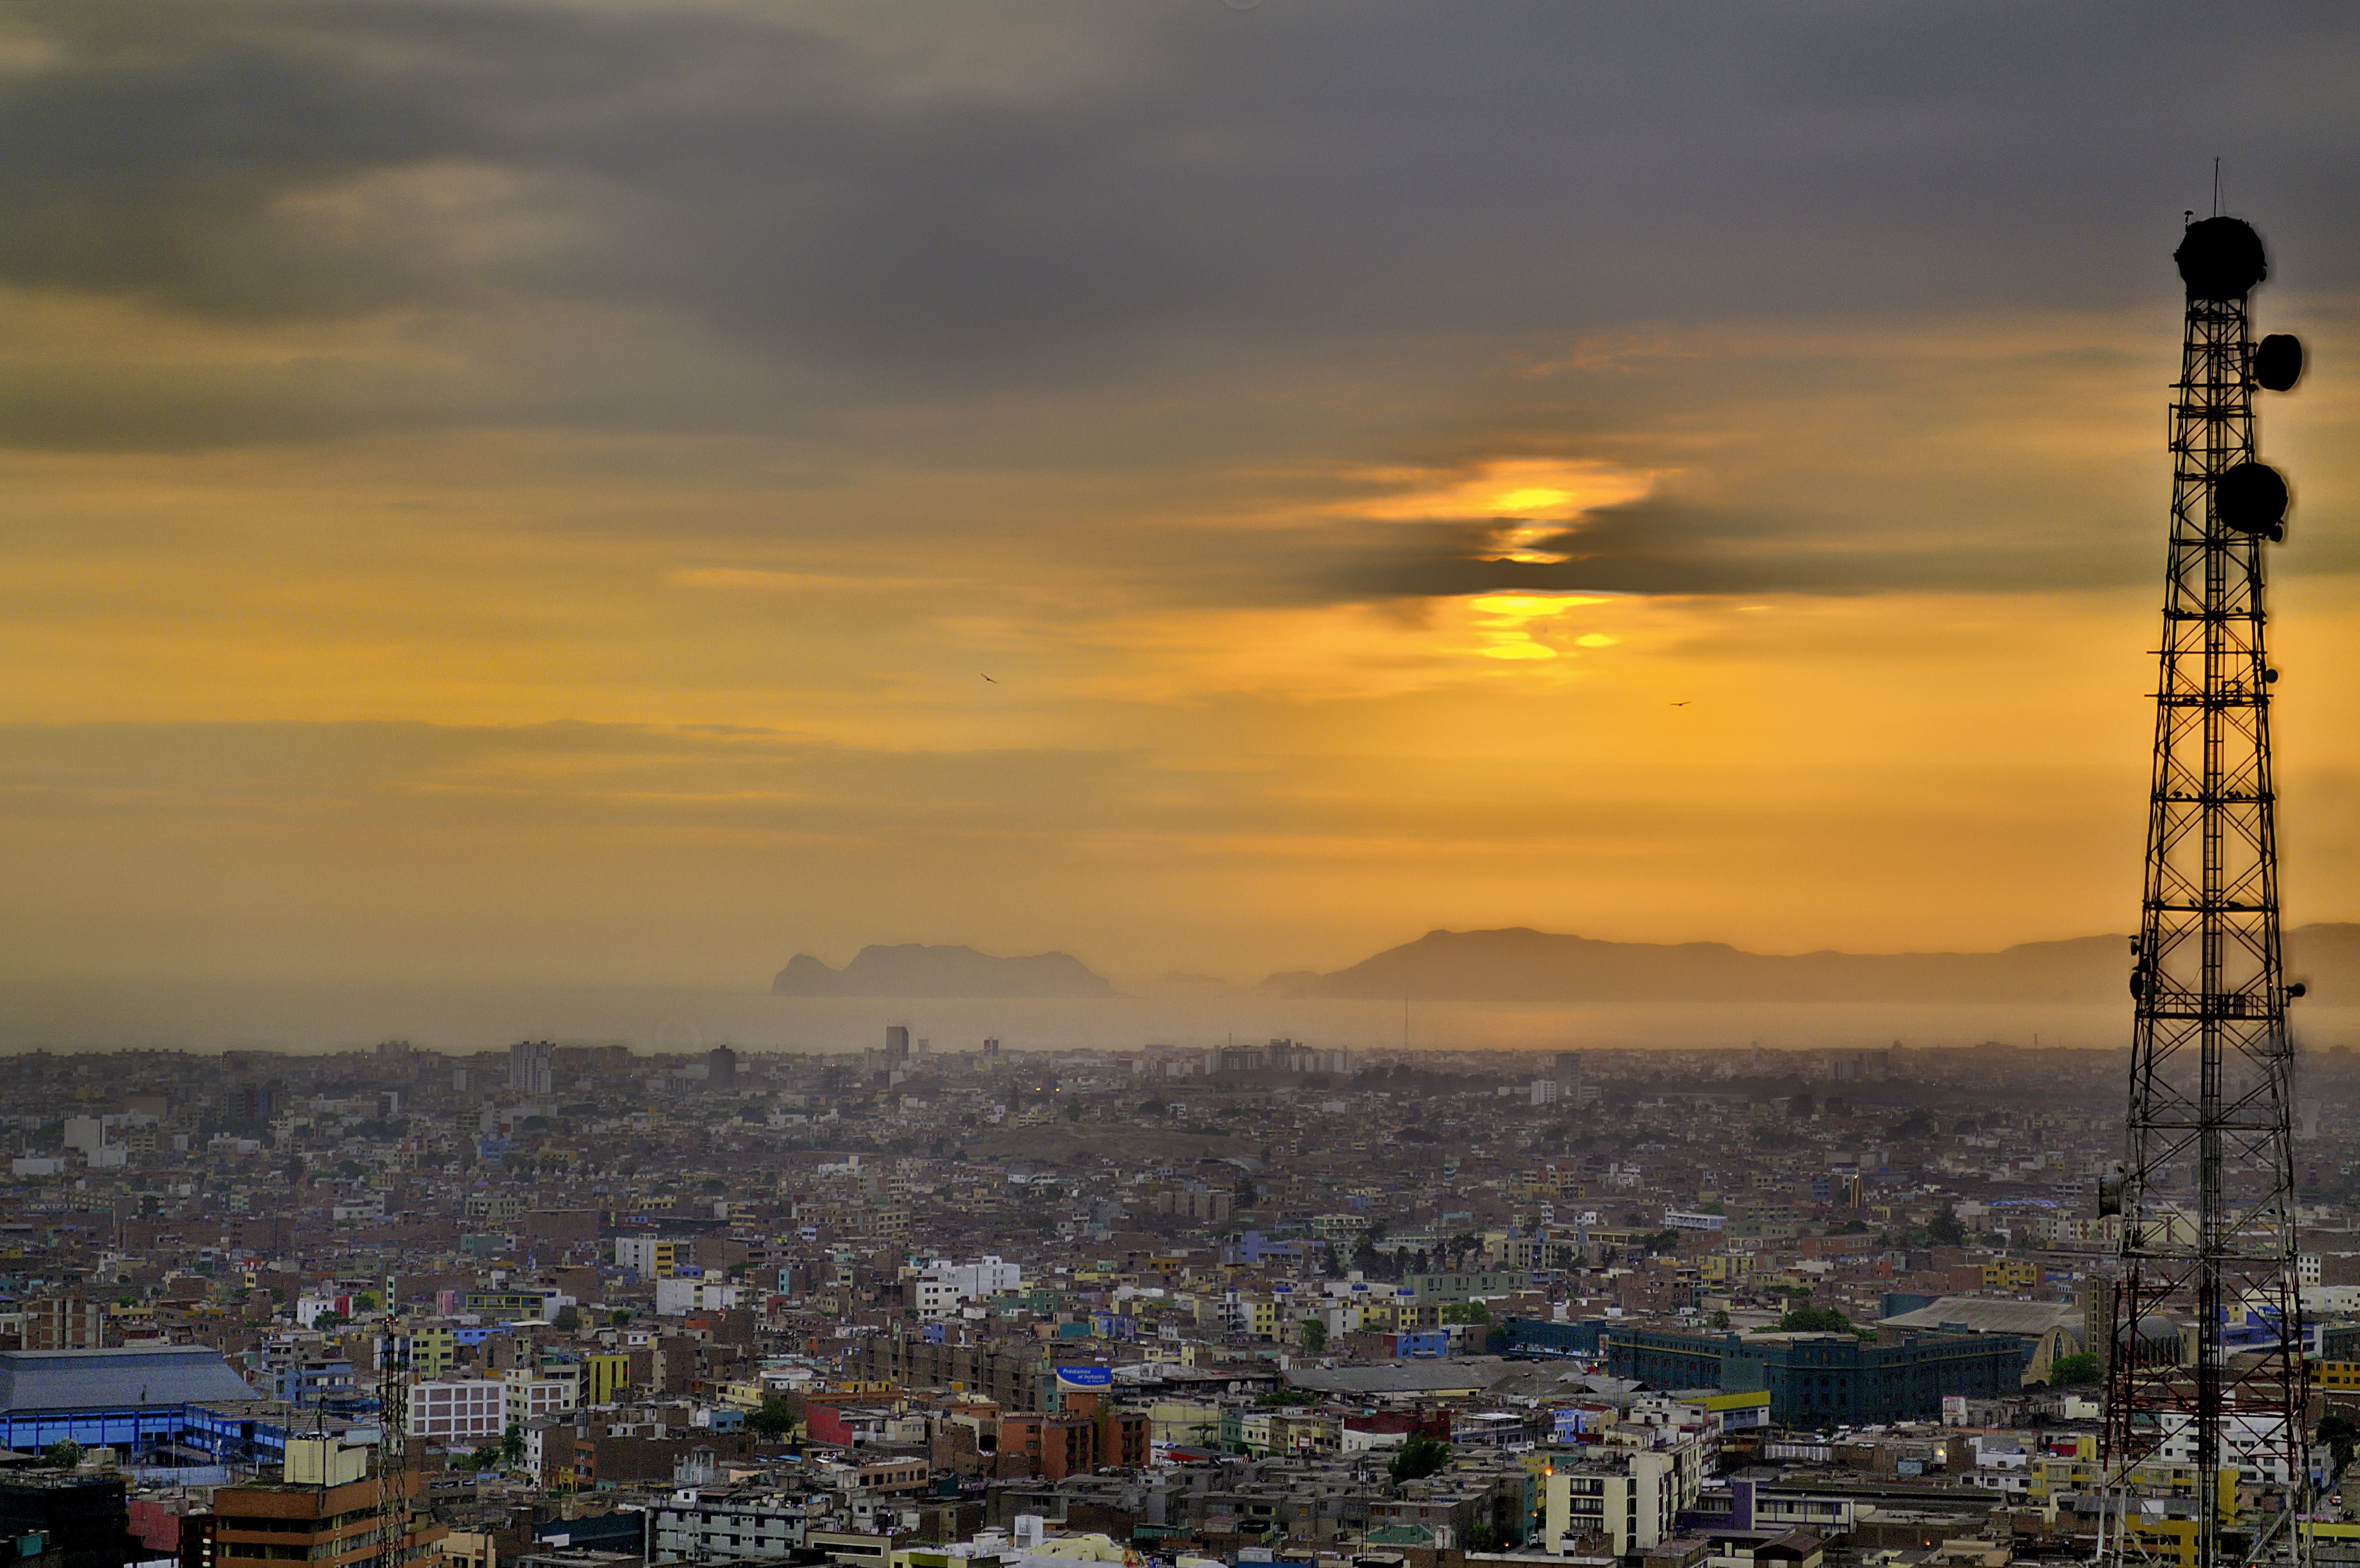 Photography-Sunset-Lima-Peru-Andrewhowson